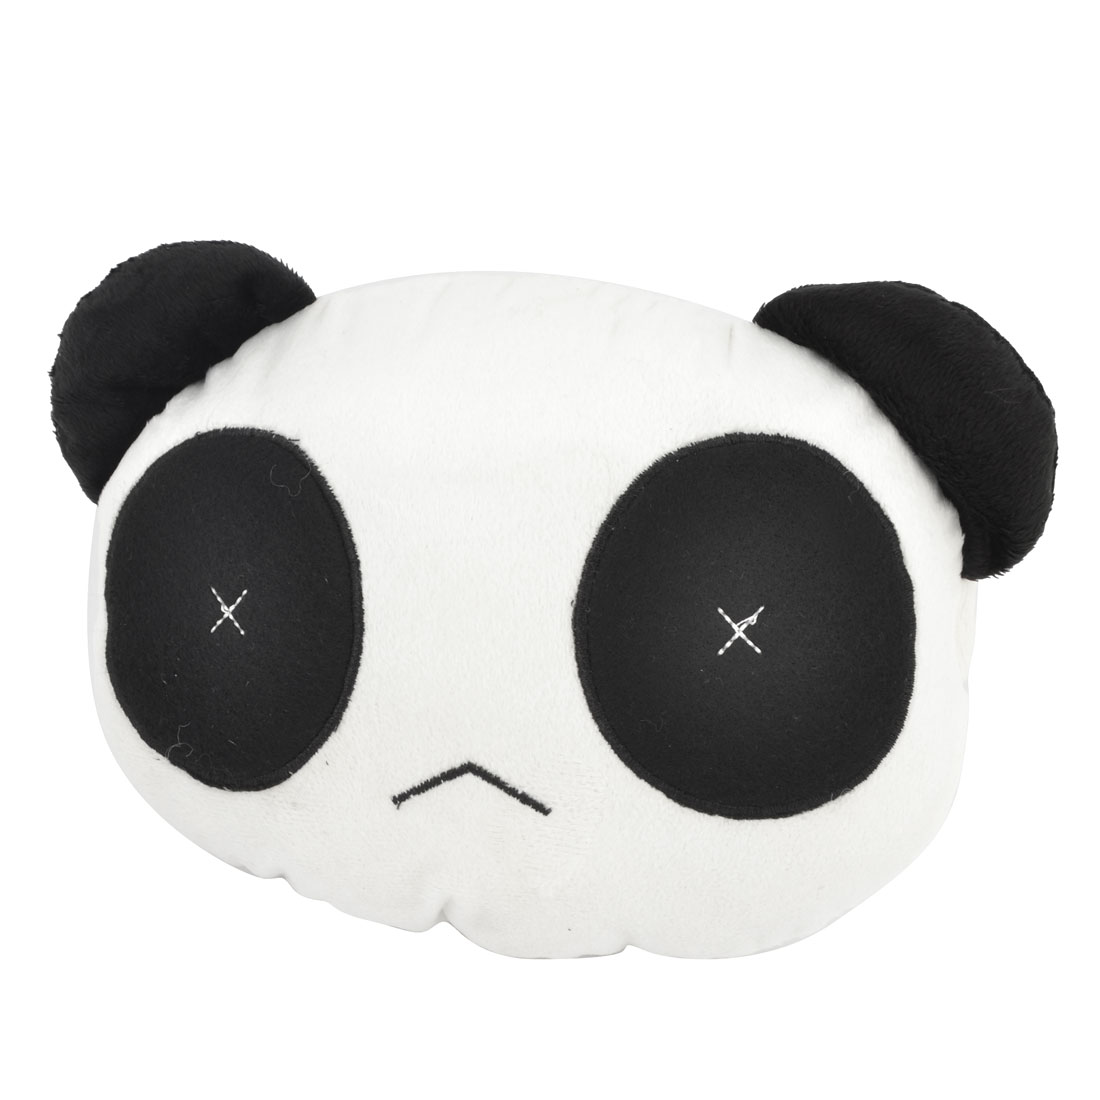 White Black Panda Shaped Neck Support Soft Pillow Headrest Cushion for Car